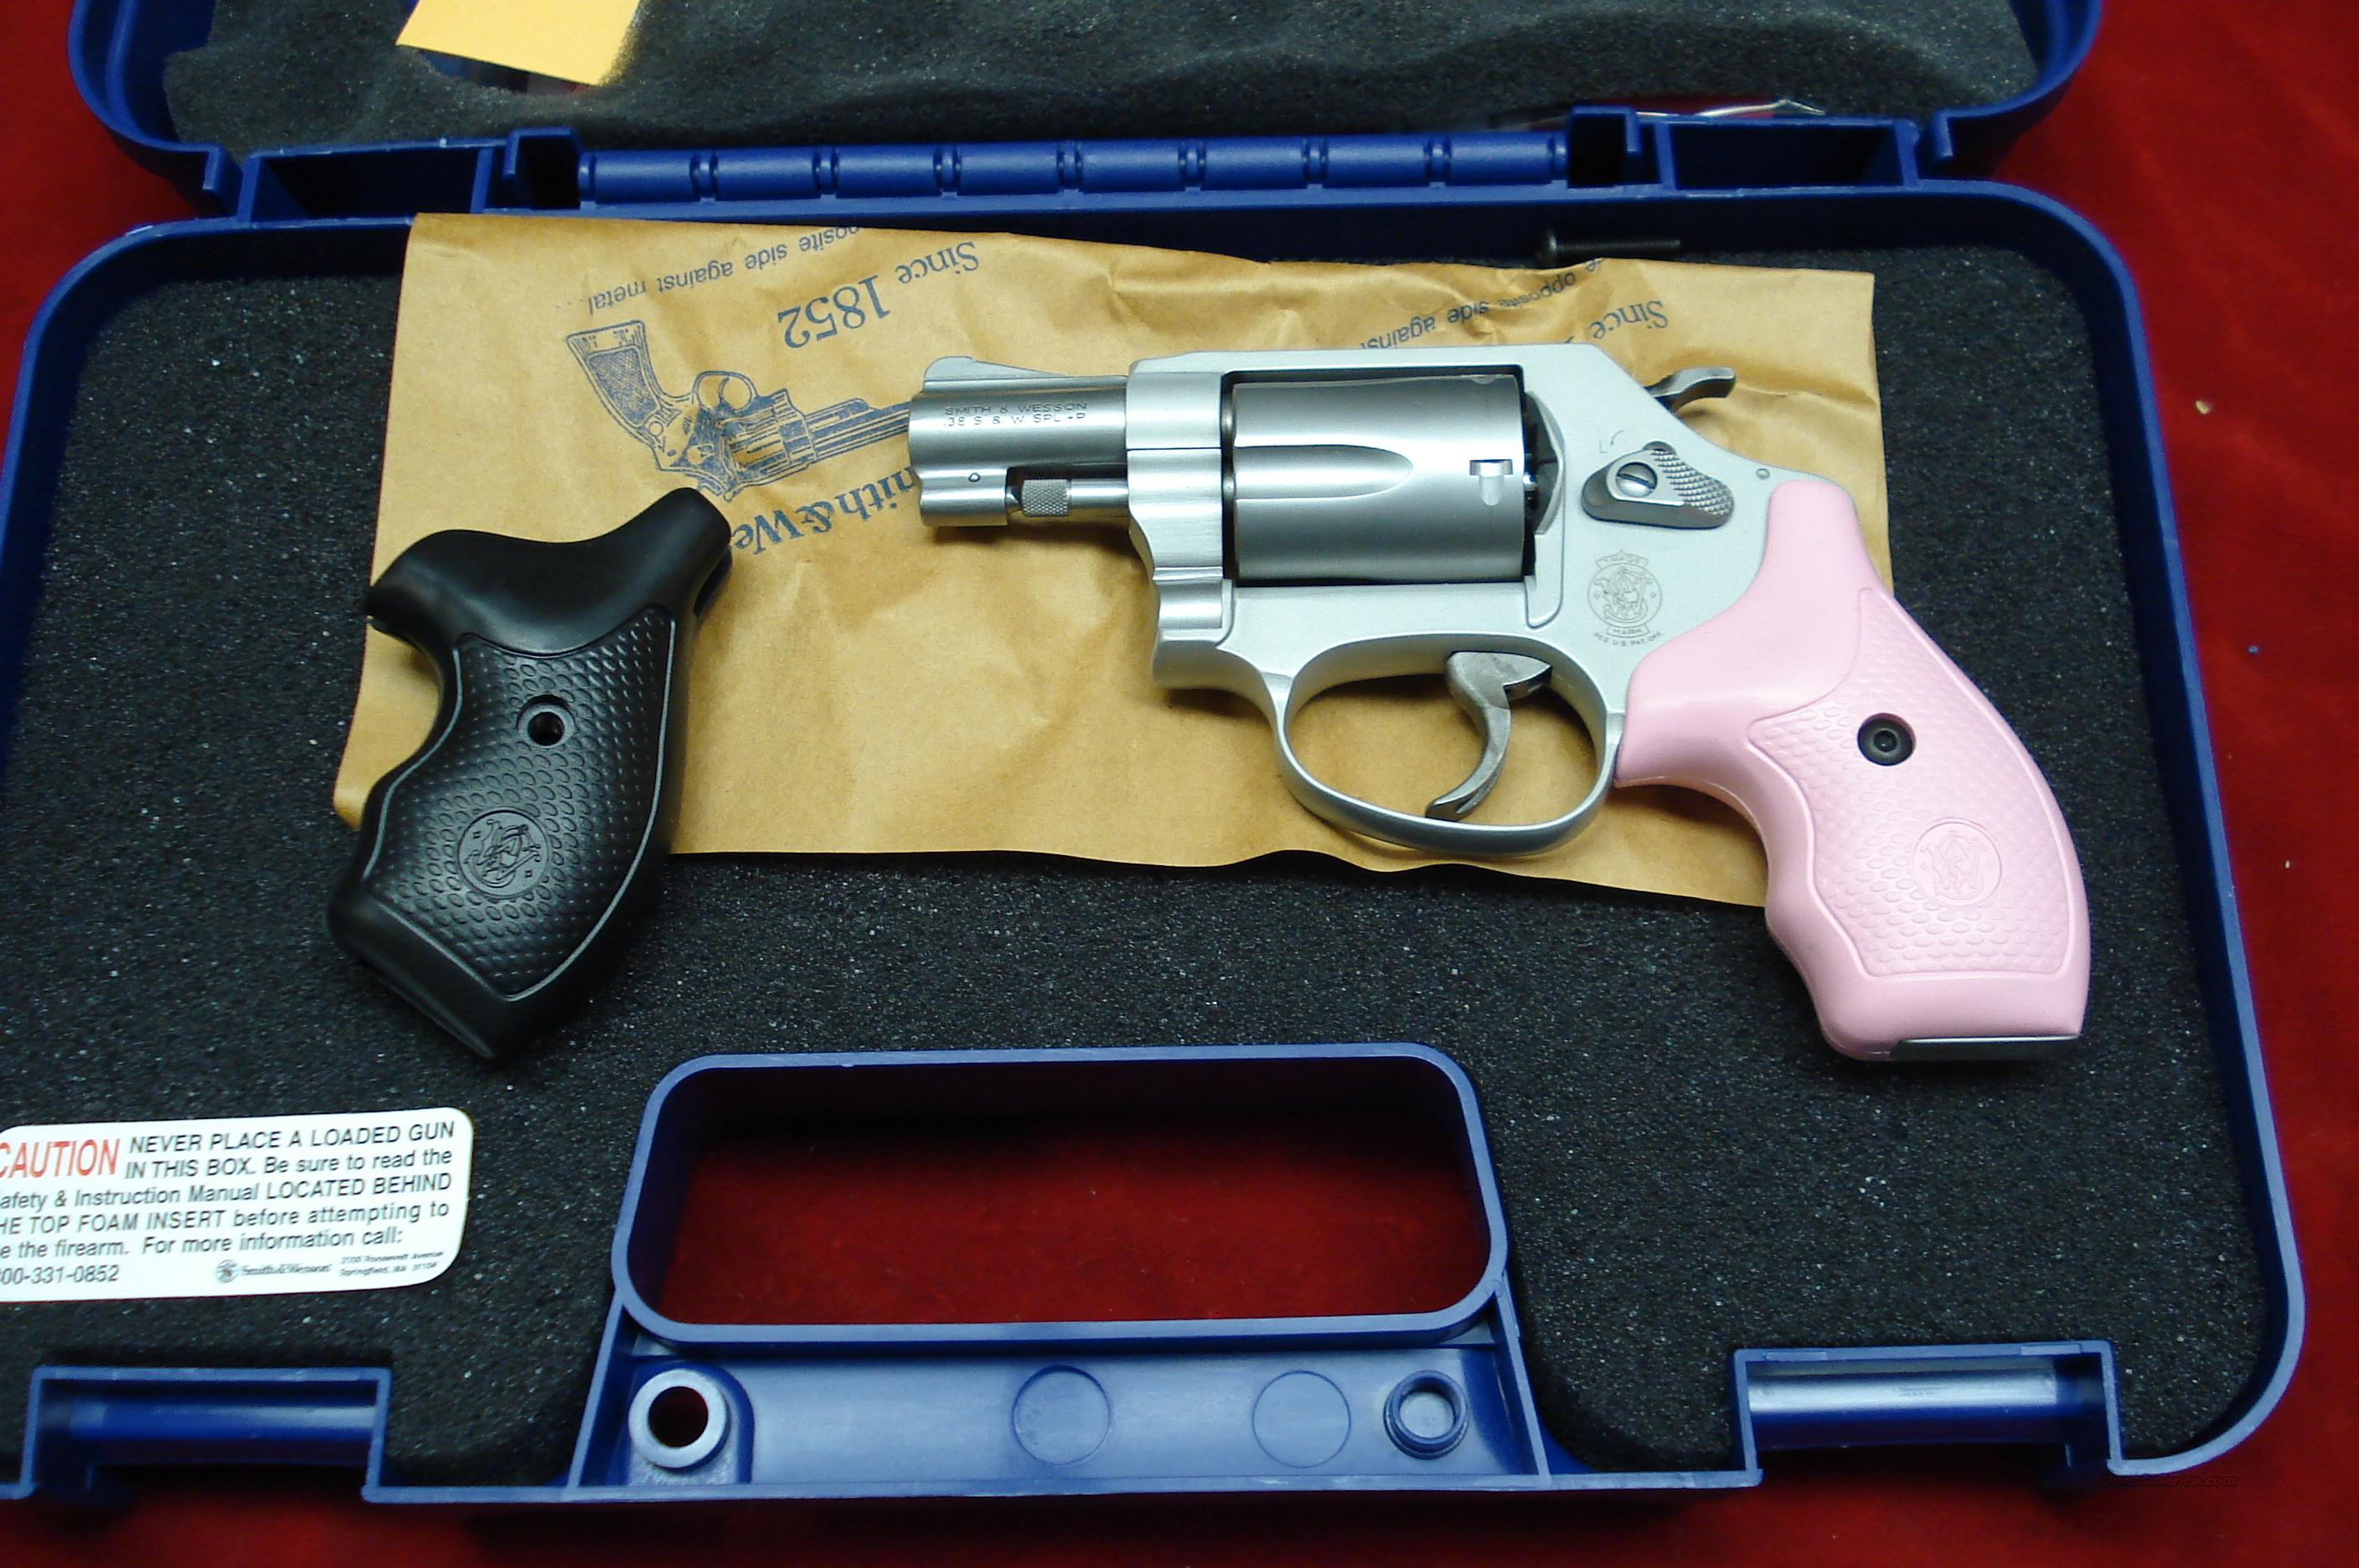 SMITH AND WESSON MODEL 637 AIRWEIGHT W/PINK GRIPS NEW  (150467)  Guns > Pistols > Smith & Wesson Revolvers > Pocket Pistols